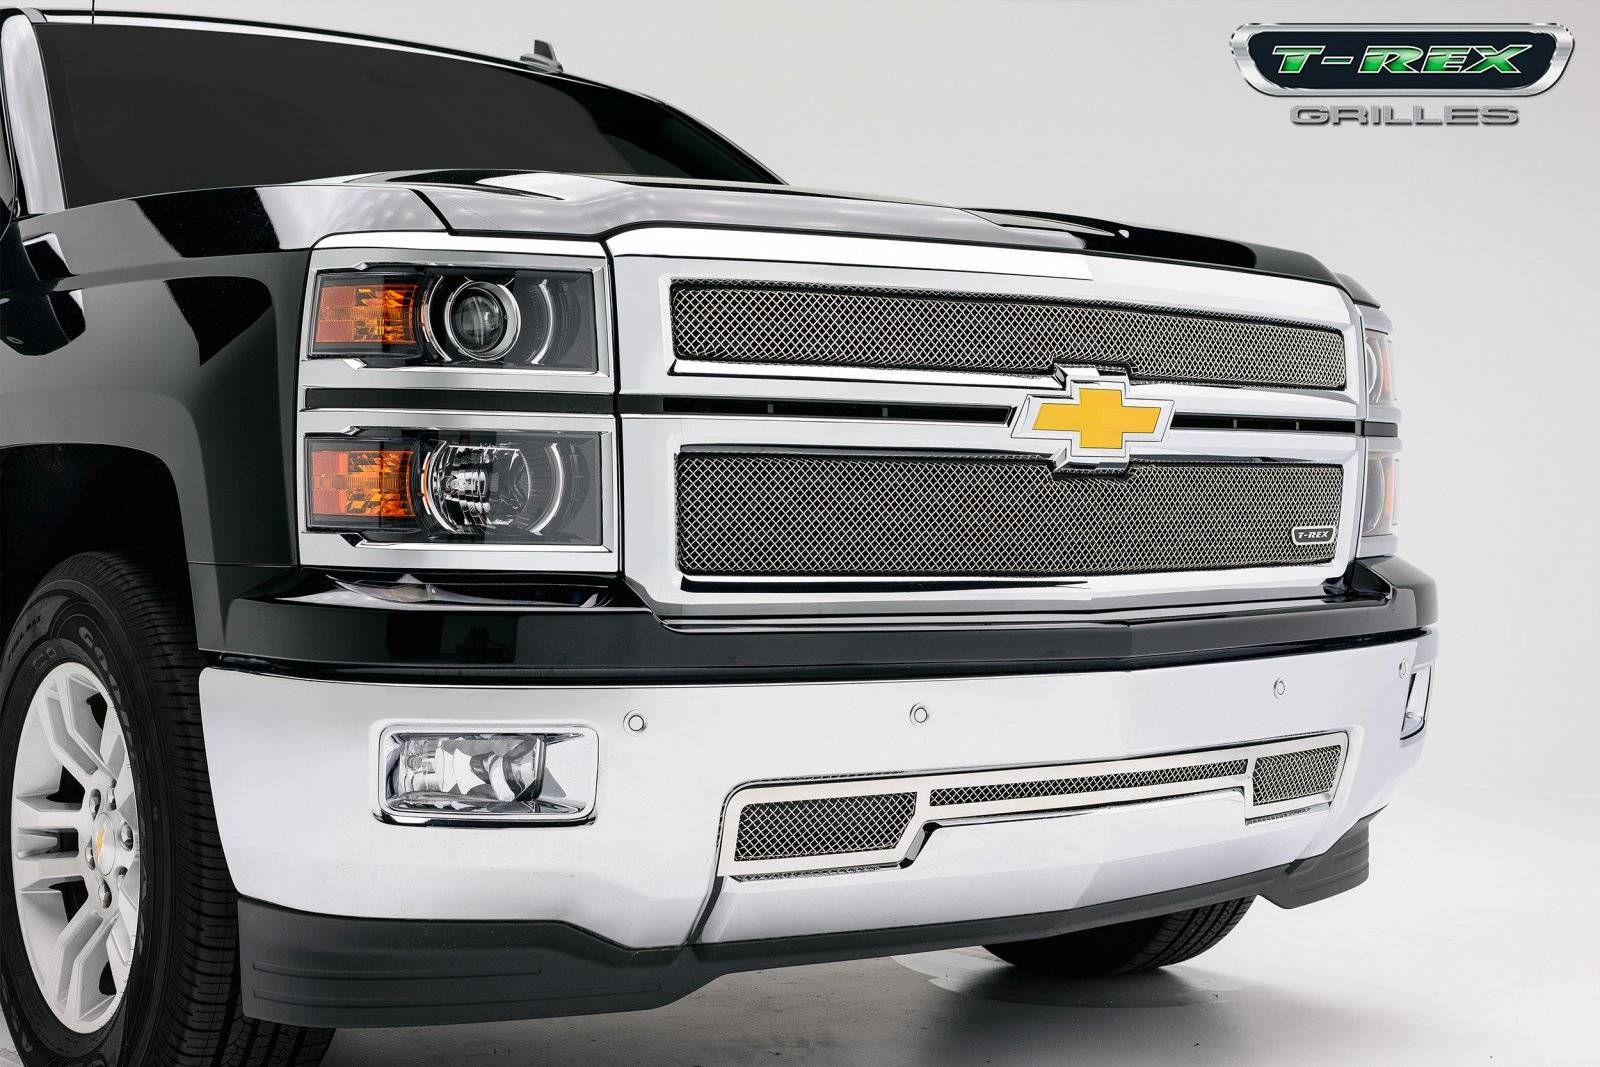 T-REX Grilles - Chevrolet Silverado Sport Series Formed Mesh Grille - Stainless Steel - Triple Chrome Plated - 2 Pc - Pt # 44117